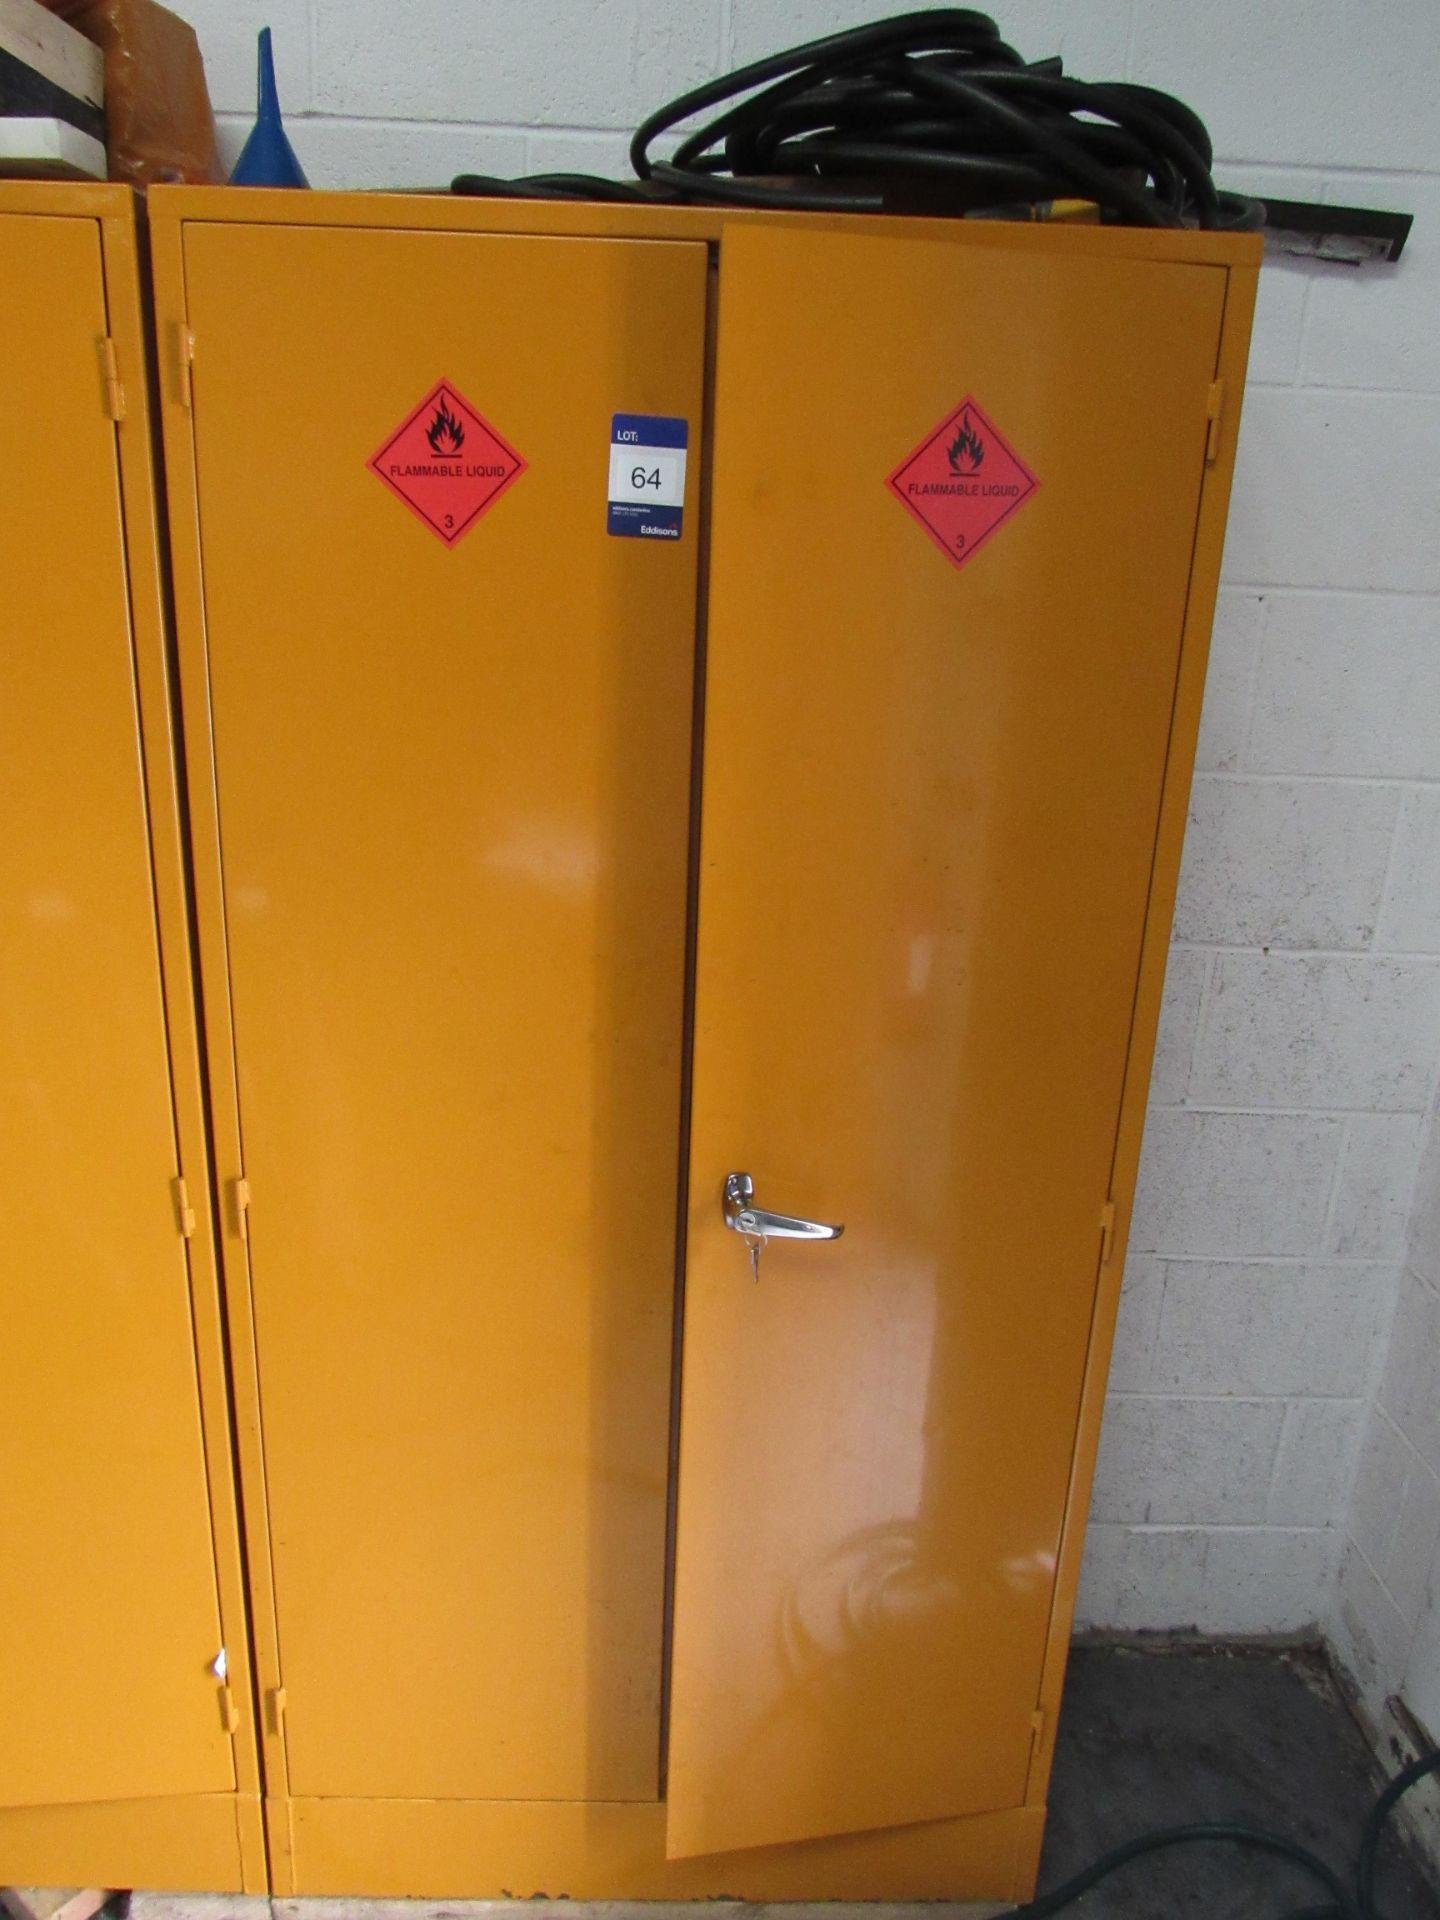 Lot 64 - Steel Flammables Cabinet and Contents (Located at Unit 11)